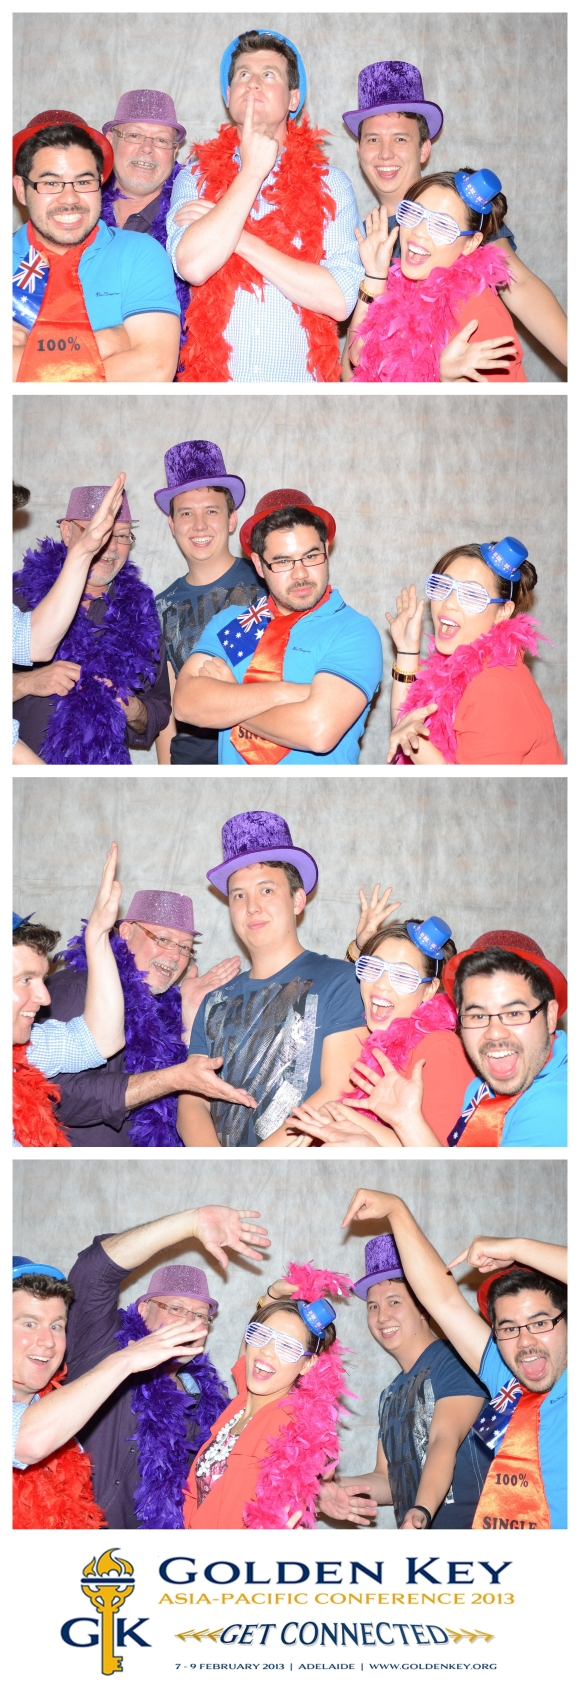 There was a photo booth at the Gala Dinner and my colleagues all snapped some fun photos! Good times!